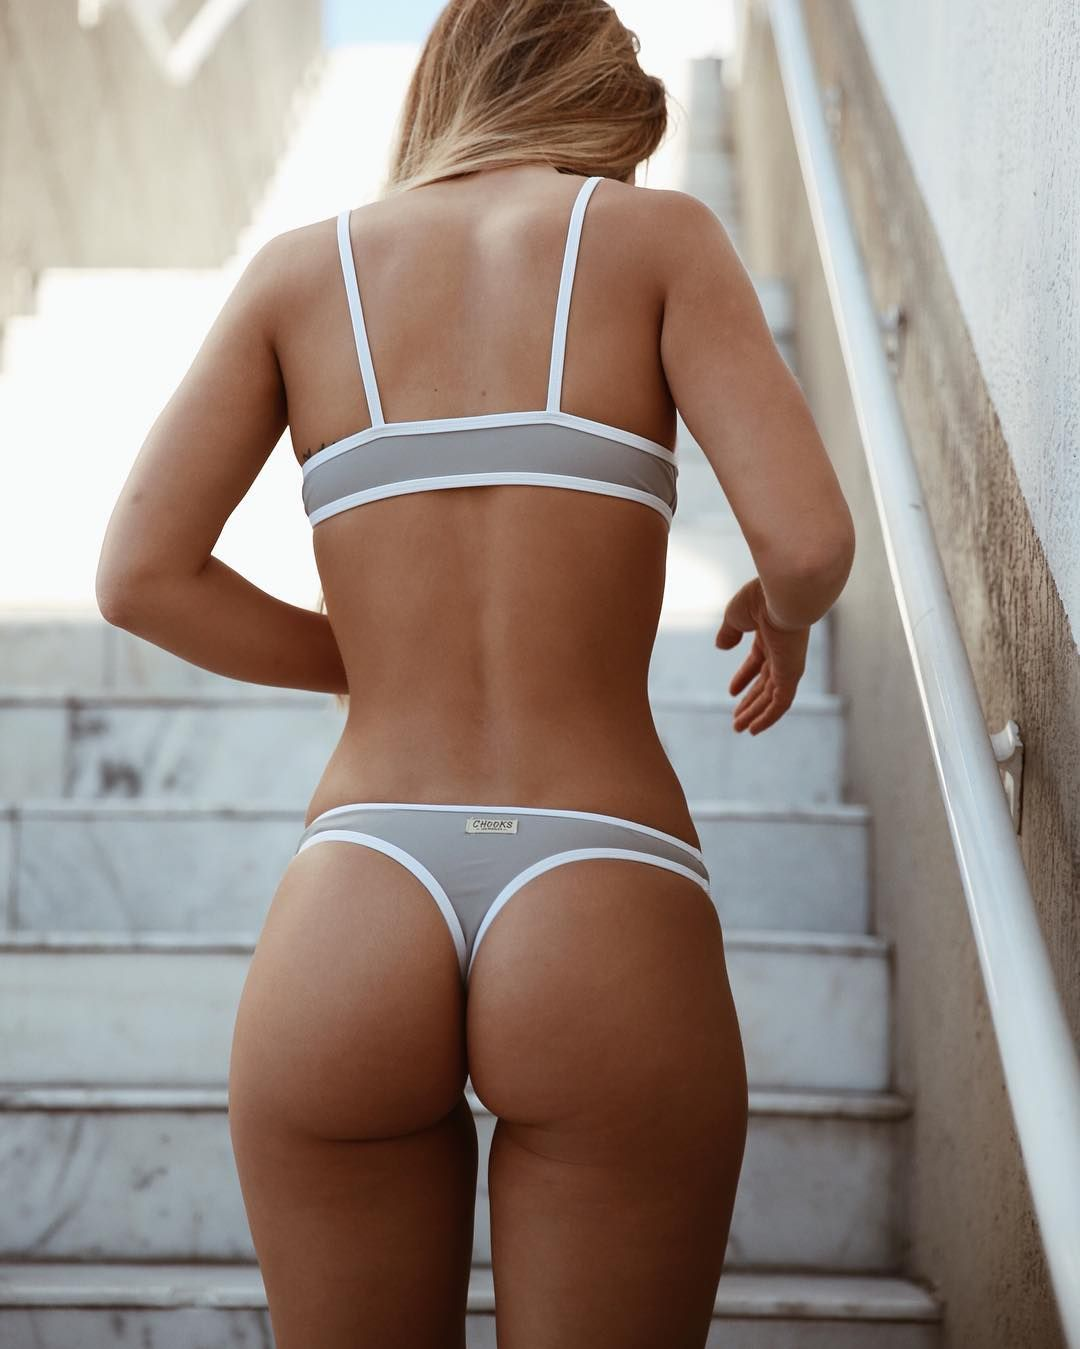 Will the thong bottom be accepted in indian scenario